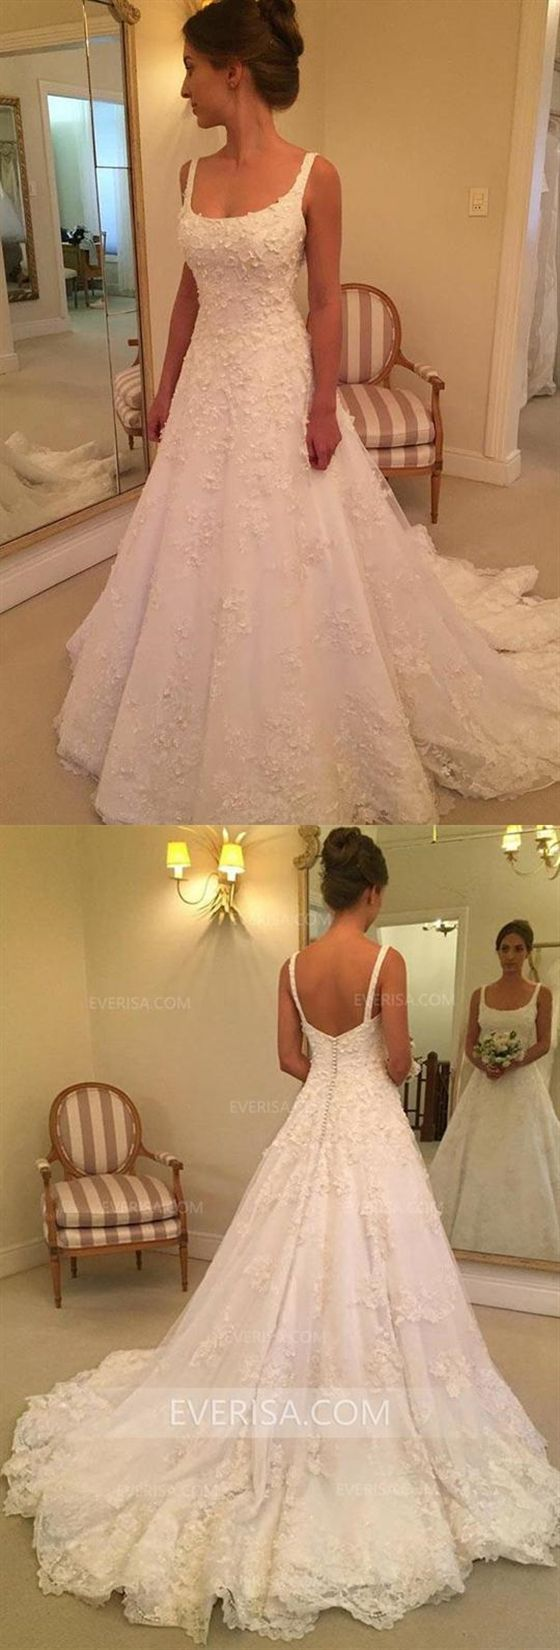 Simple White Sleeveless Backless Lace Wedding Dresses Long Bridal Gown Sweep Train Wedding Dress Wedding Dress Train Backless Lace Wedding Dress [ 1650 x 560 Pixel ]